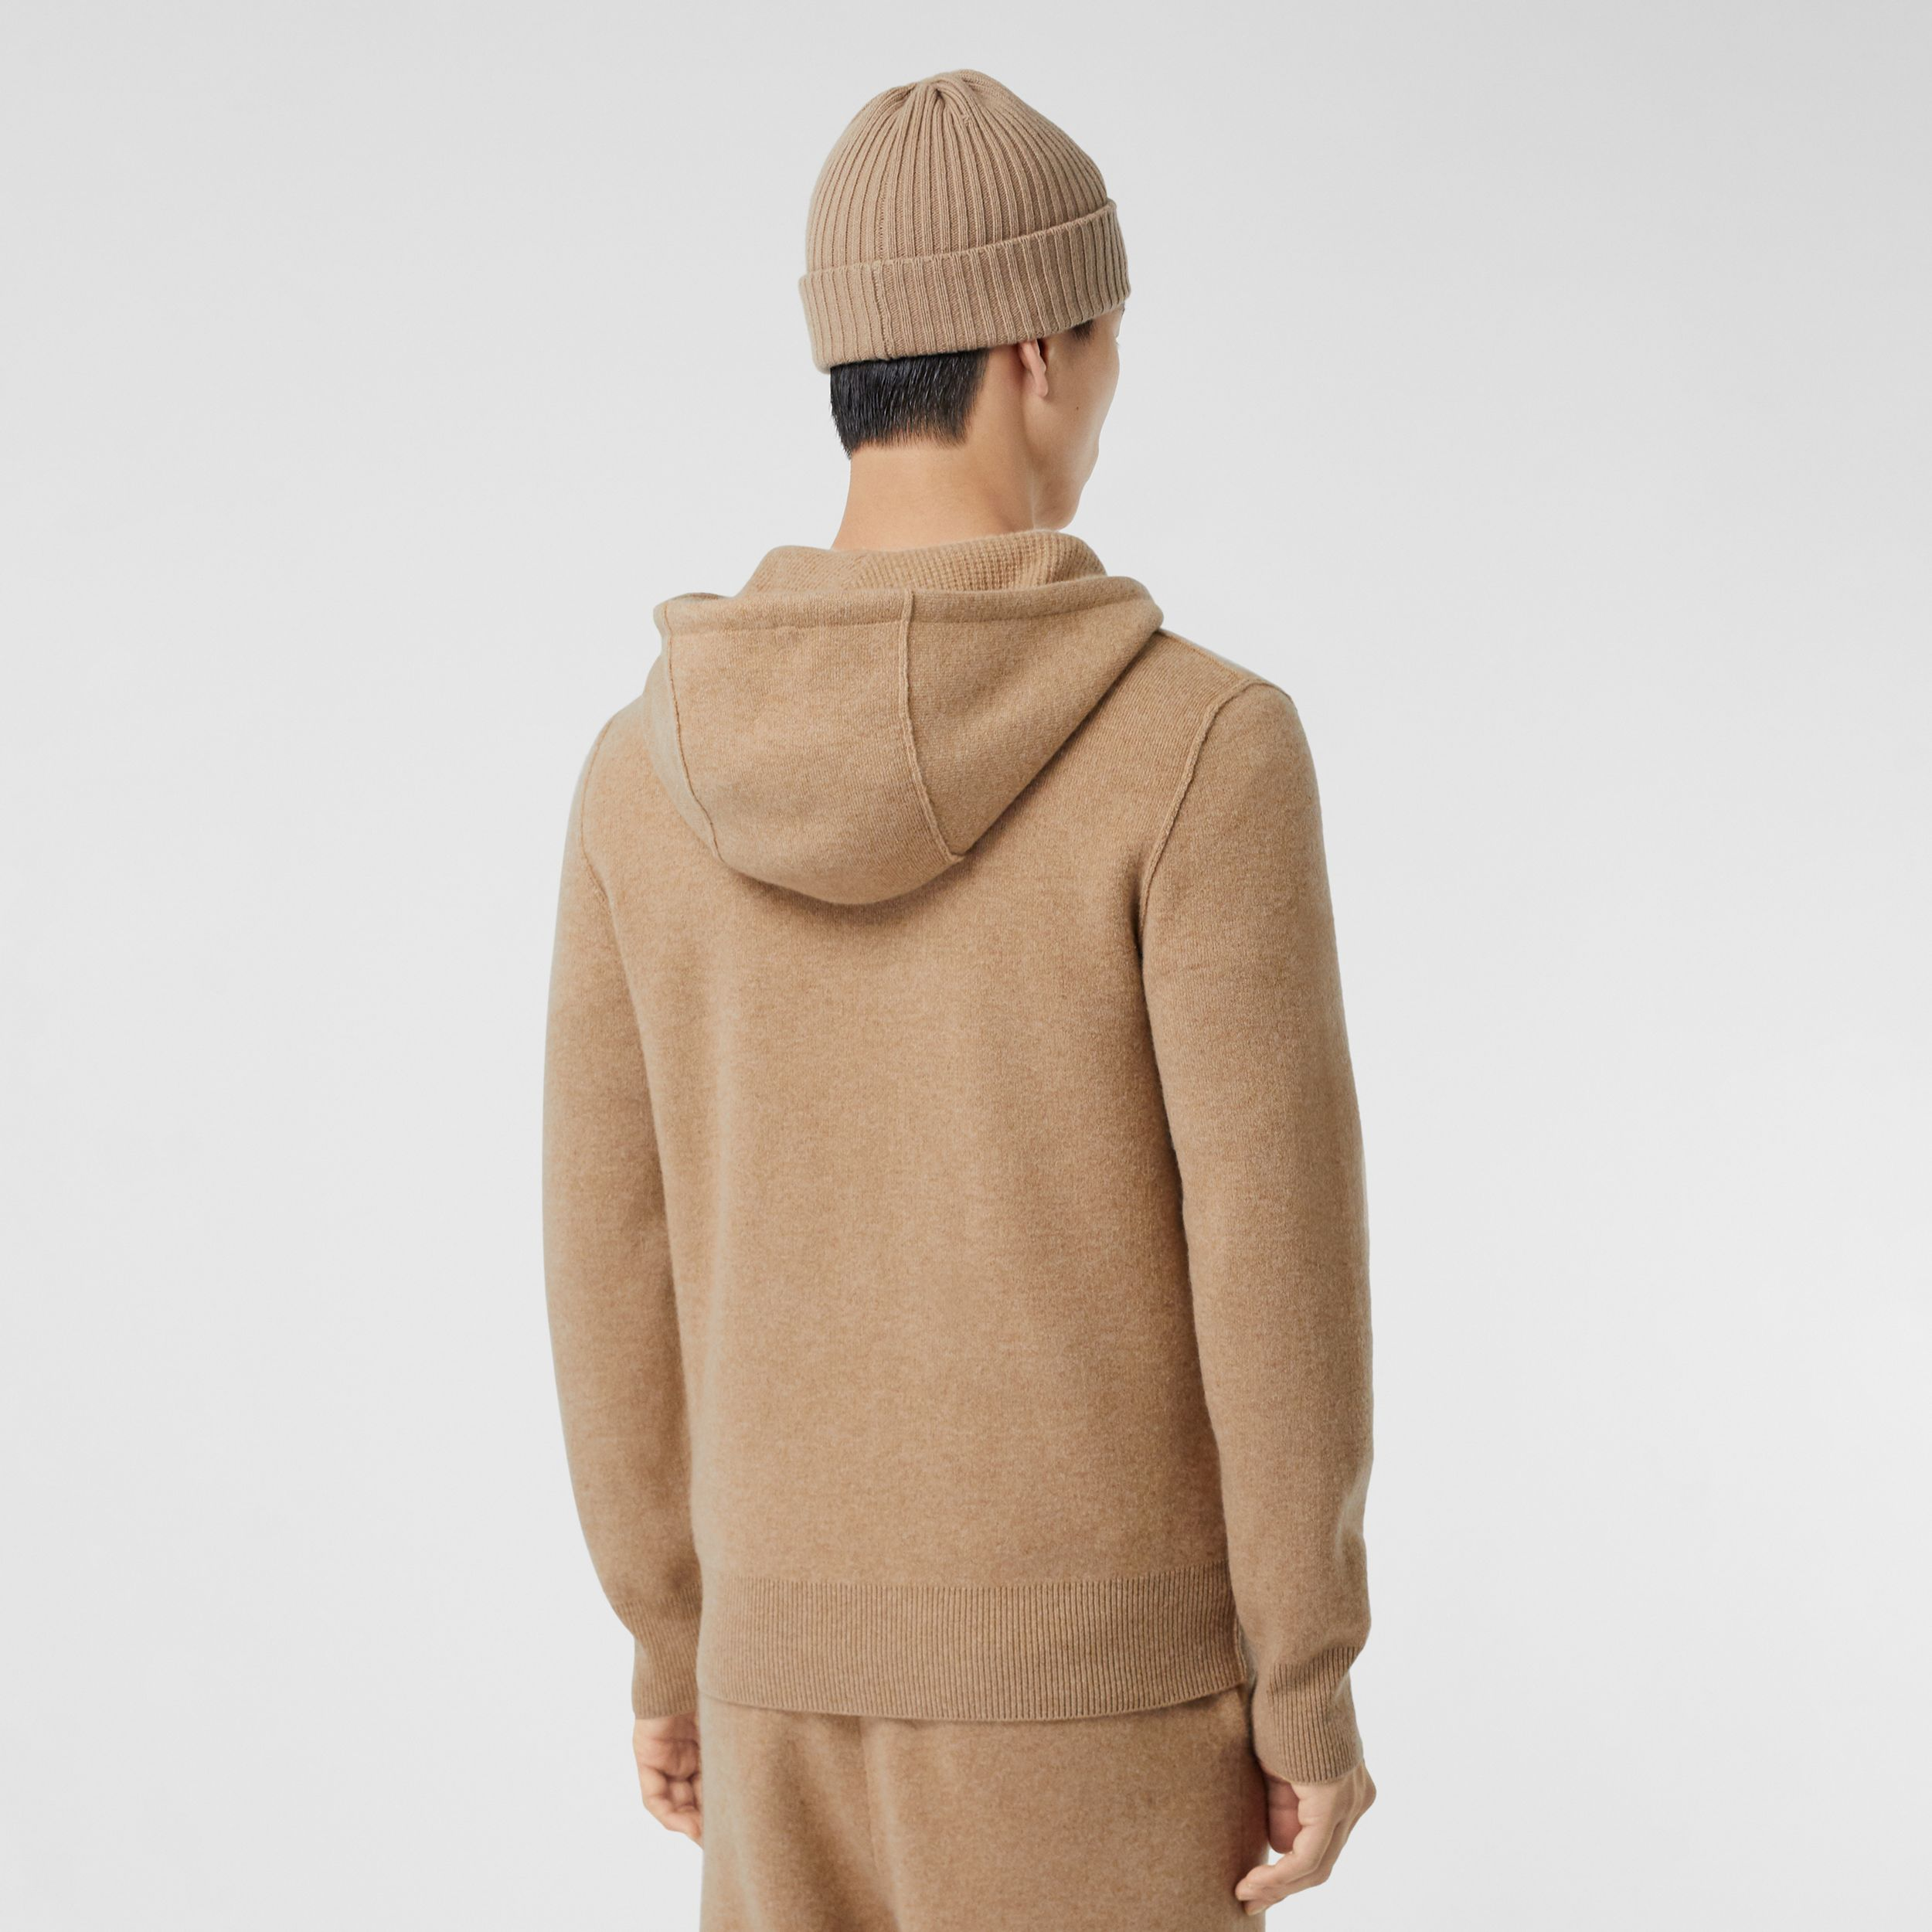 Monogram Motif Cashmere Blend Hooded Top in Pale Coffee - Men | Burberry - 3